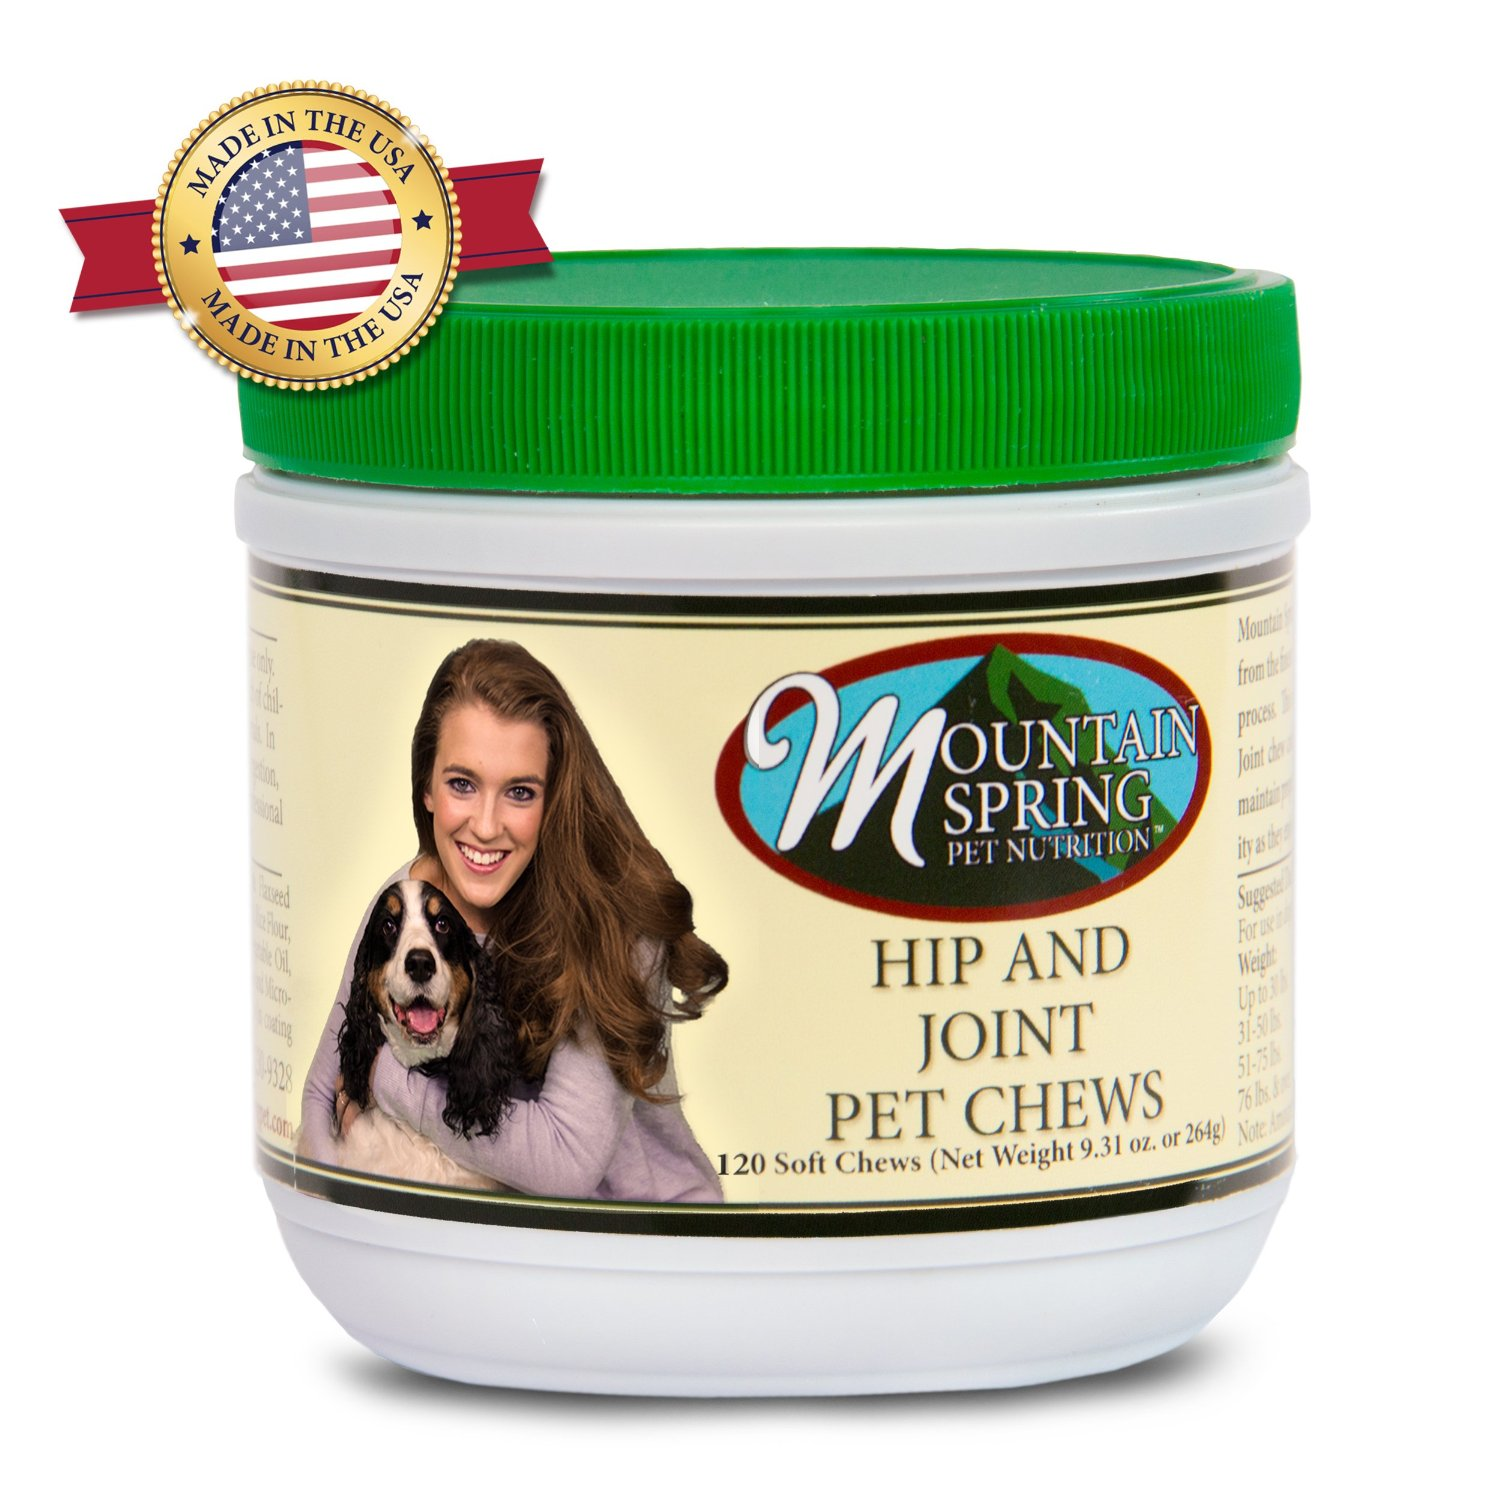 Hip And Joint Pet Chews